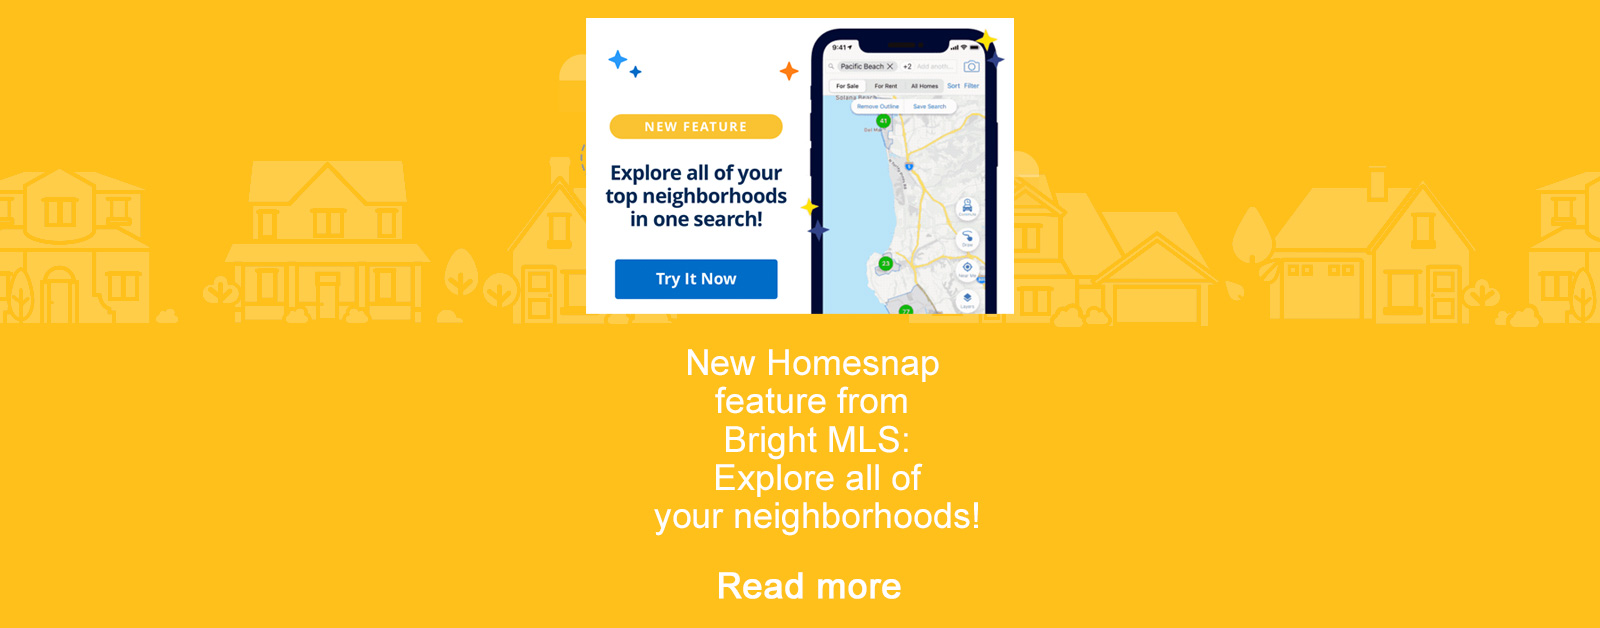 Bright MLS and Homesnap integration story